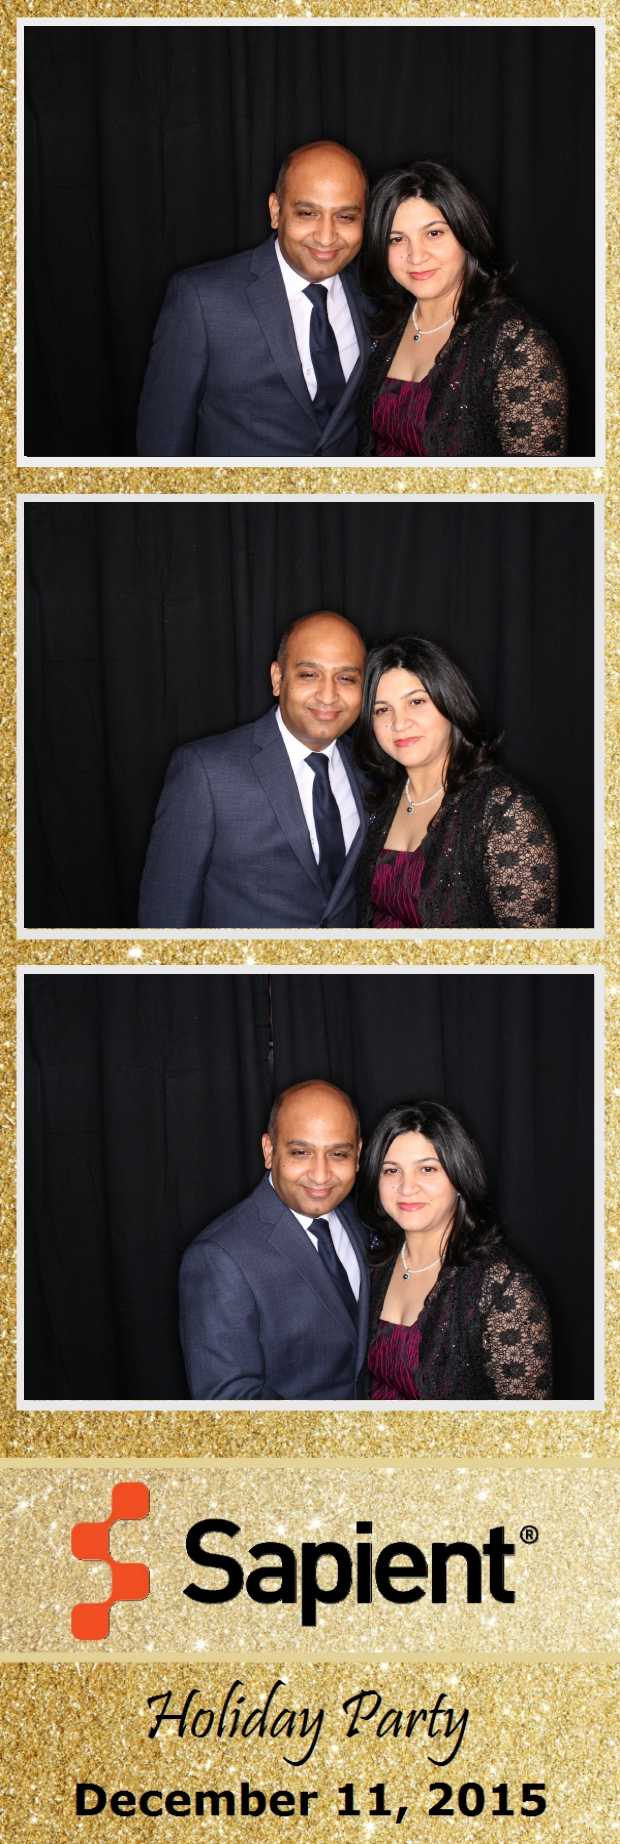 Guest House Events Photo Booth Sapient Holiday Party (16).jpg